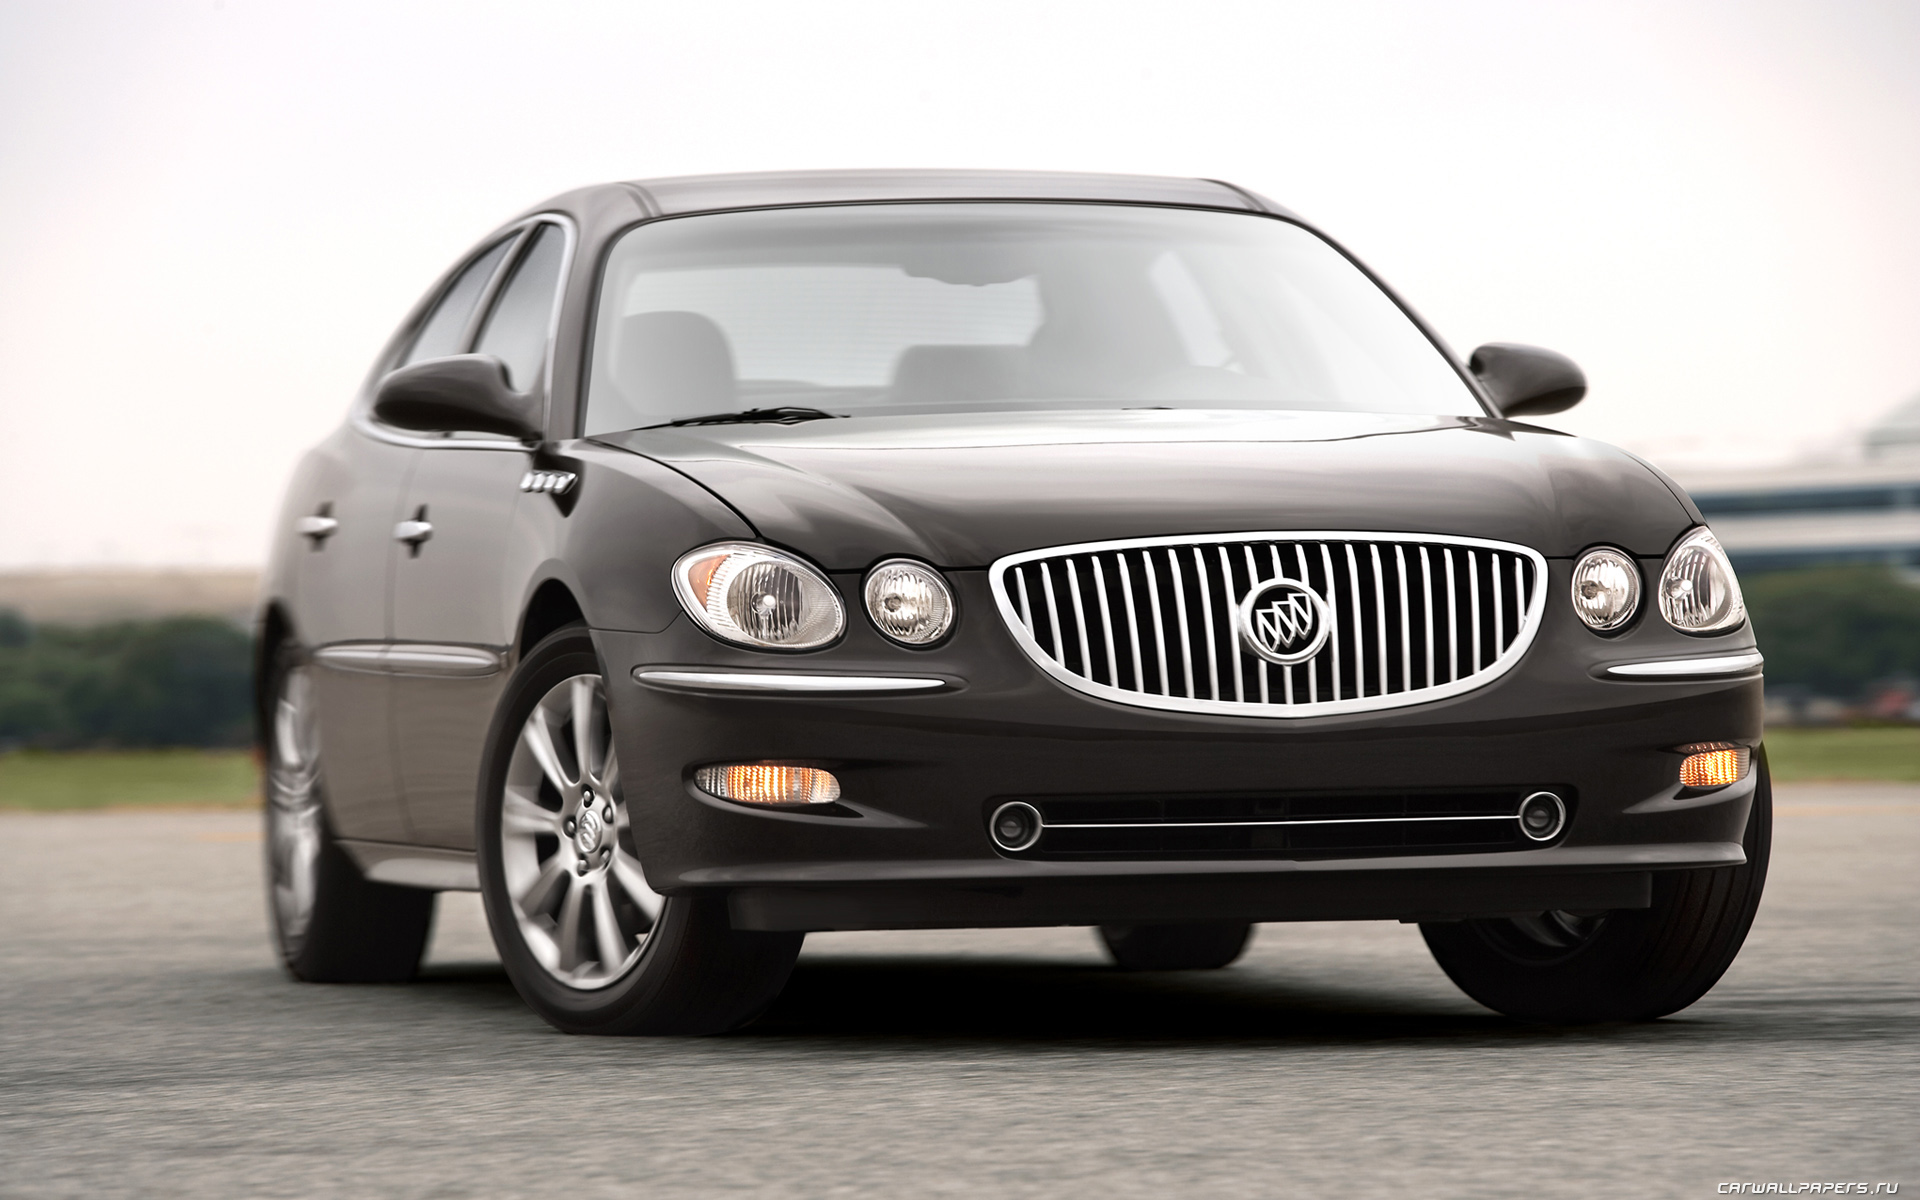 Buick Lacrosse 2002 photo - 3